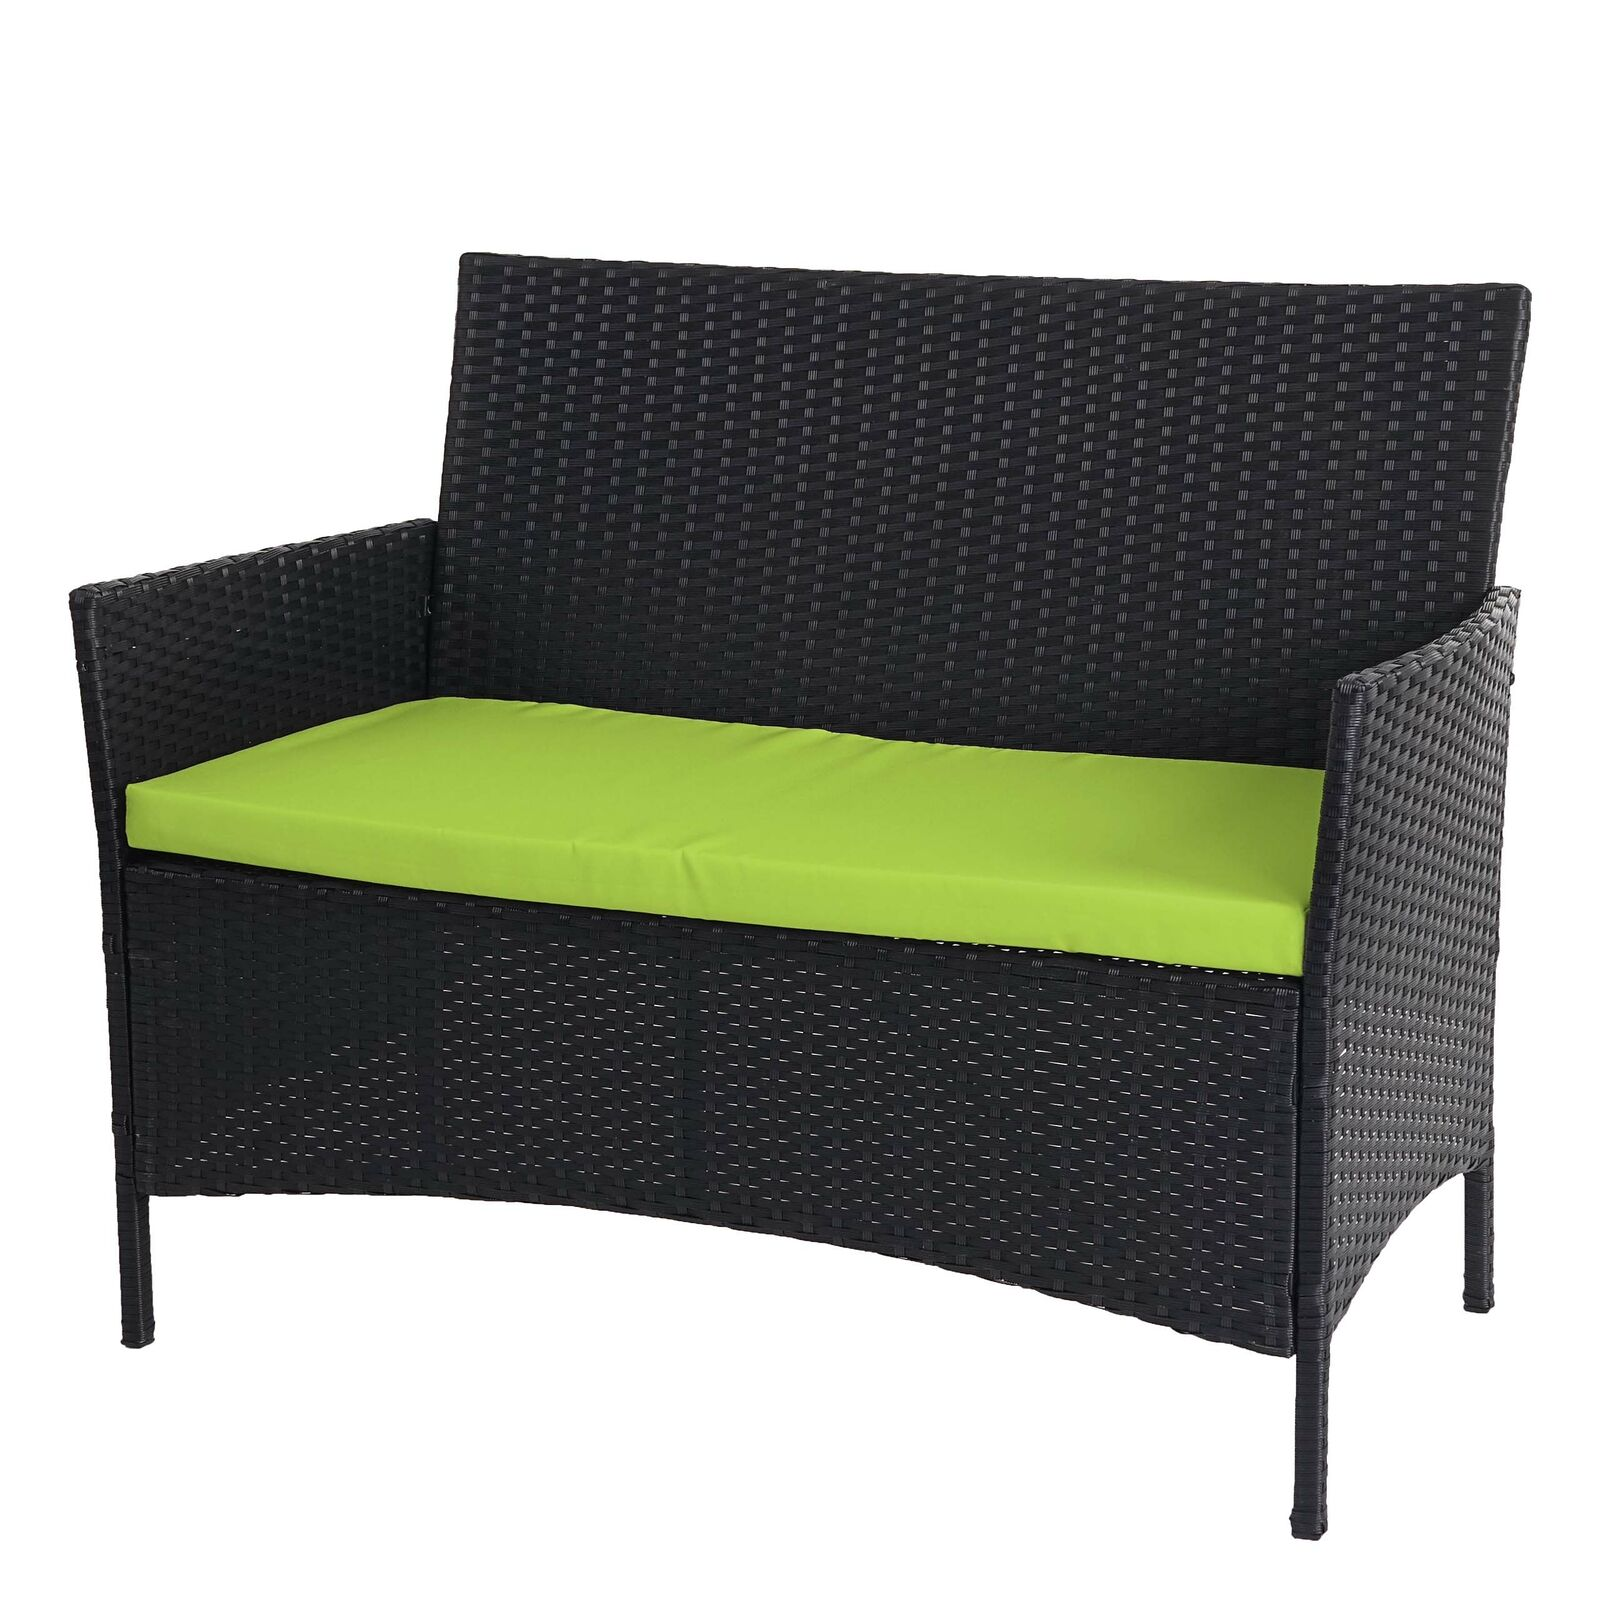 poly rattan gartenbank hamar sitzbank bank anthrazit kissen gr n eur 88 99 picclick it. Black Bedroom Furniture Sets. Home Design Ideas